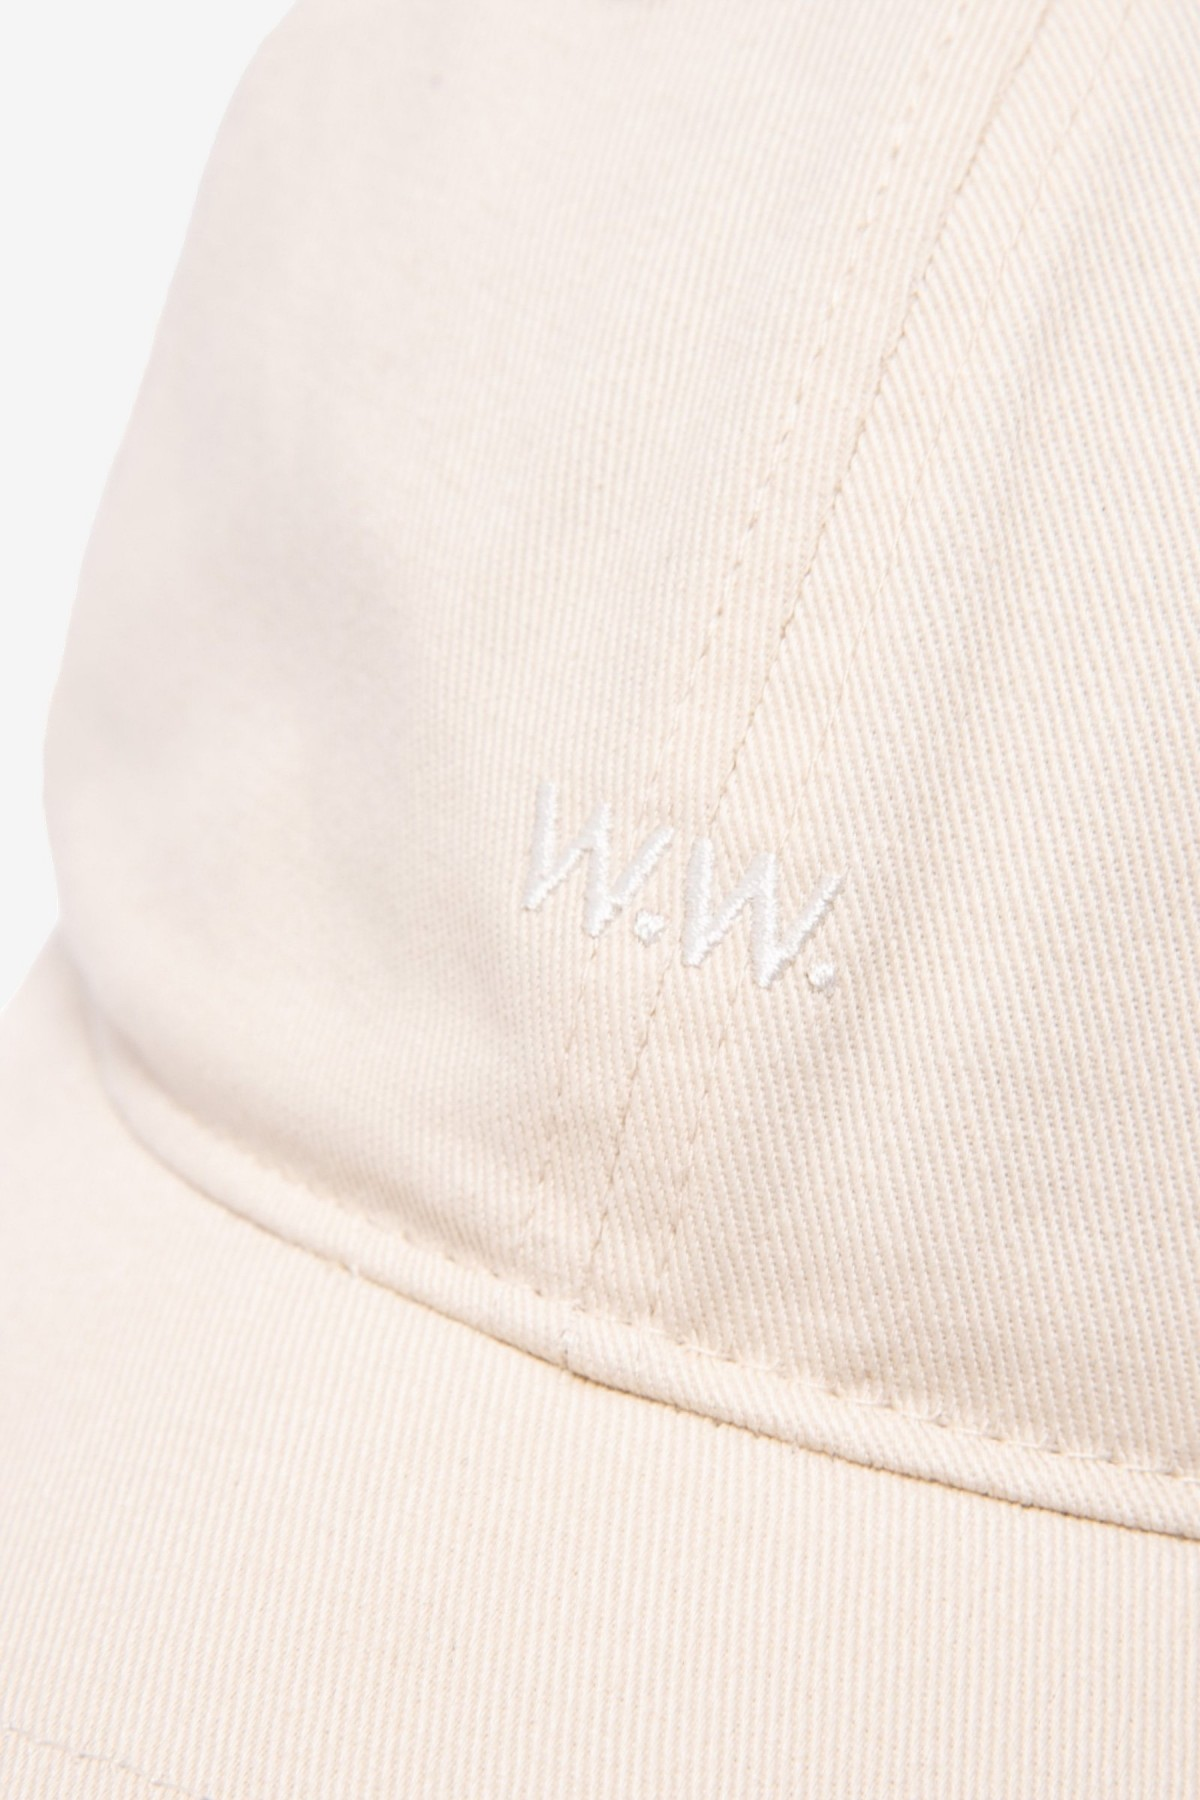 Wood Wood Low Profile Cap in Off White